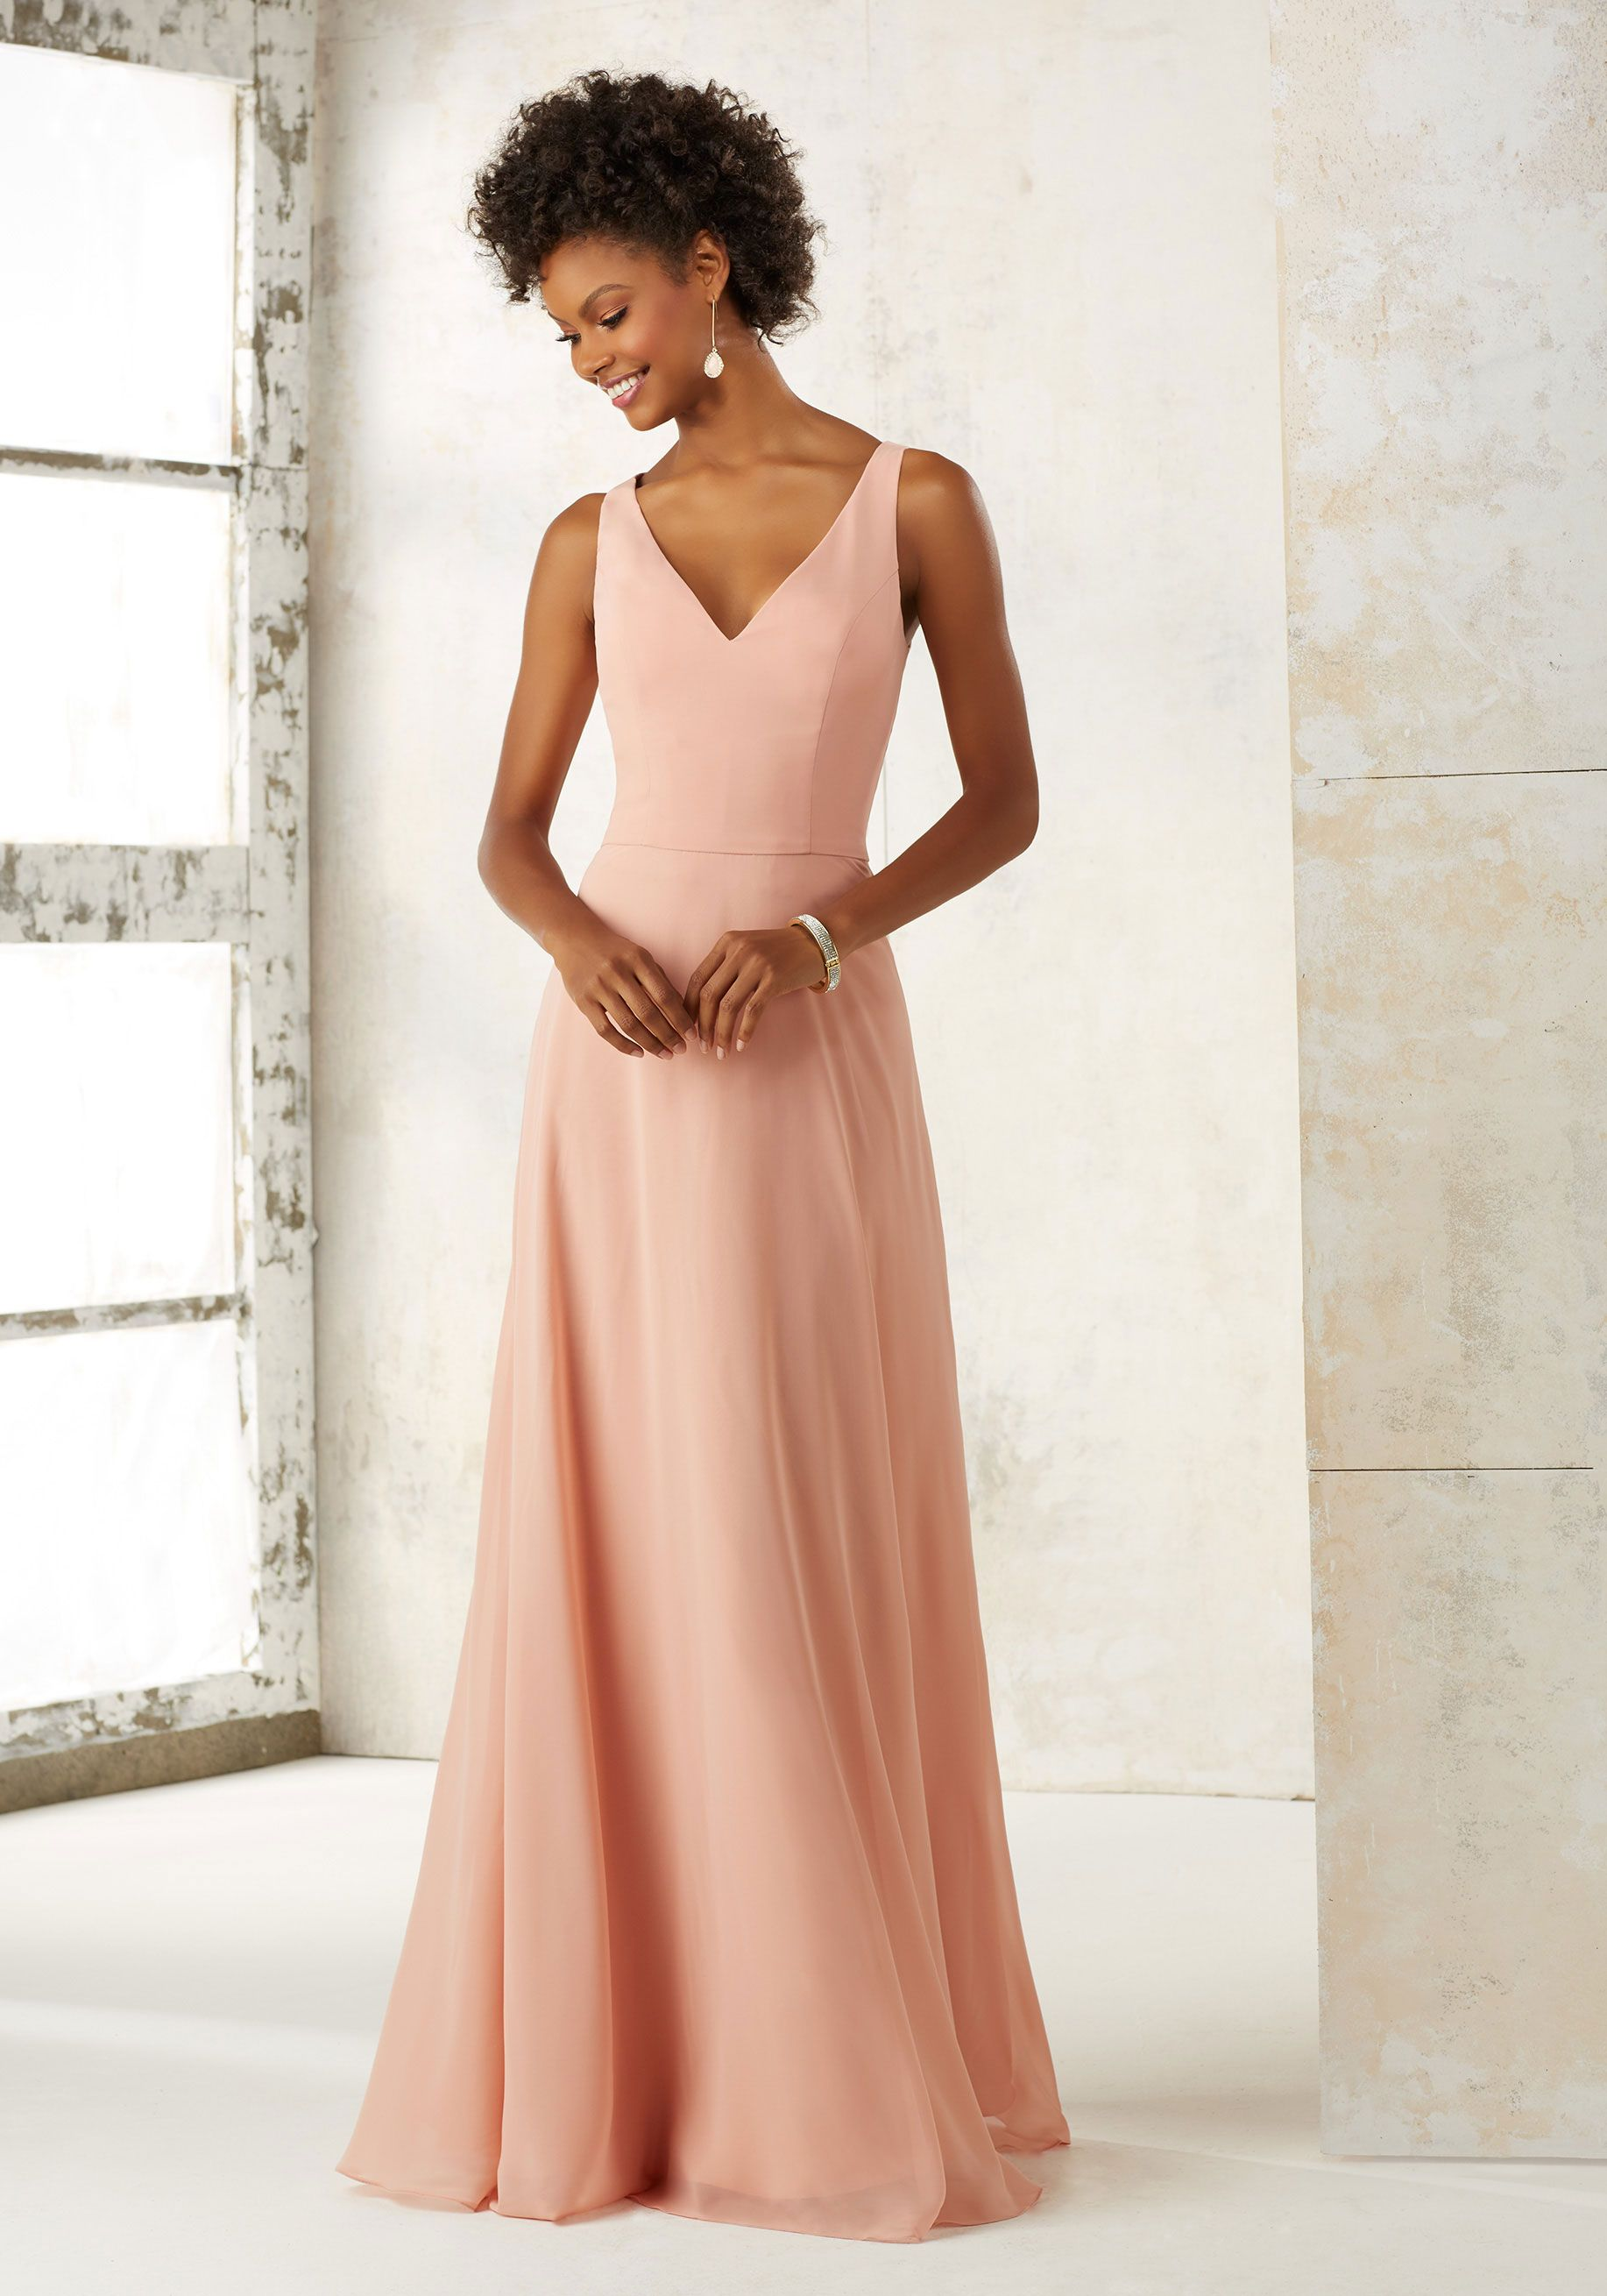 554ecae94a This Sleeveless A-Line Chiffon Bridesmaids Dress Features a V Neckline and  Draped Overlay Back. Shown in Peach